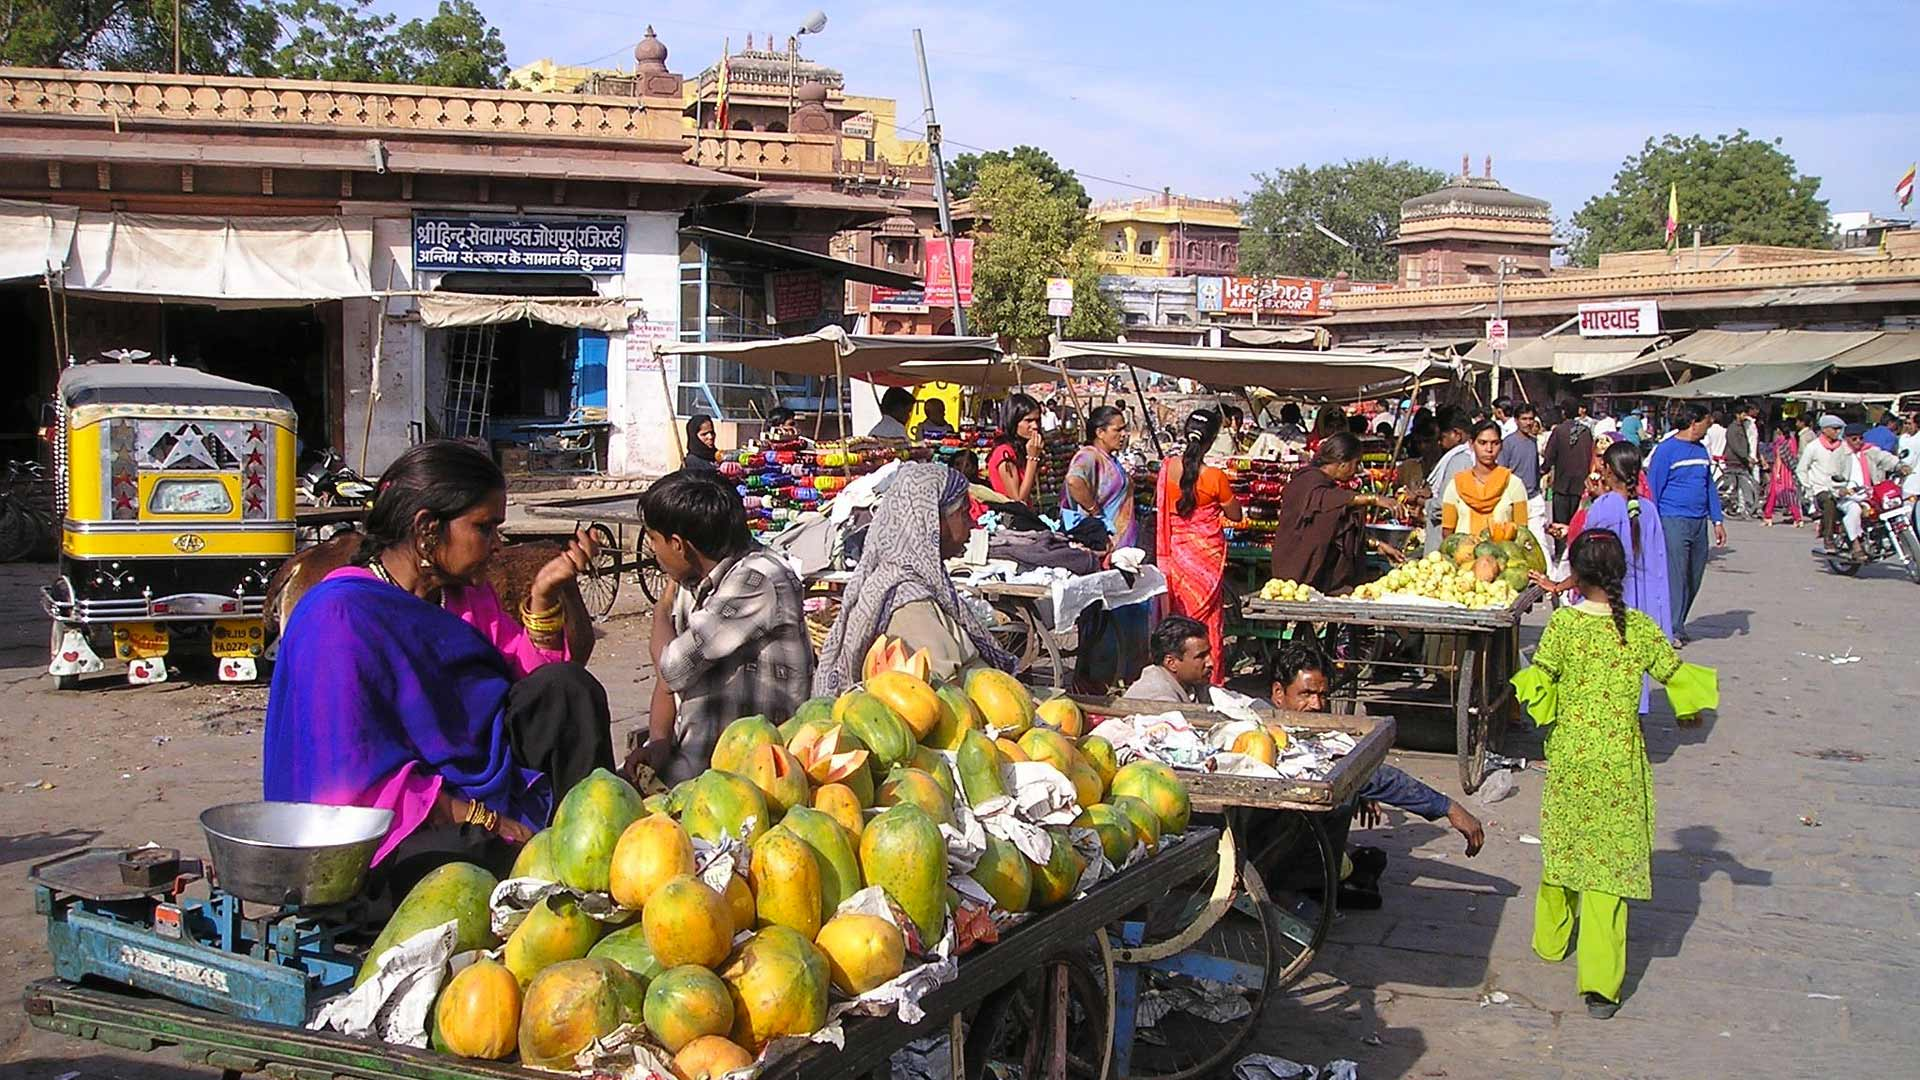 Poverty Alleviation as a Business